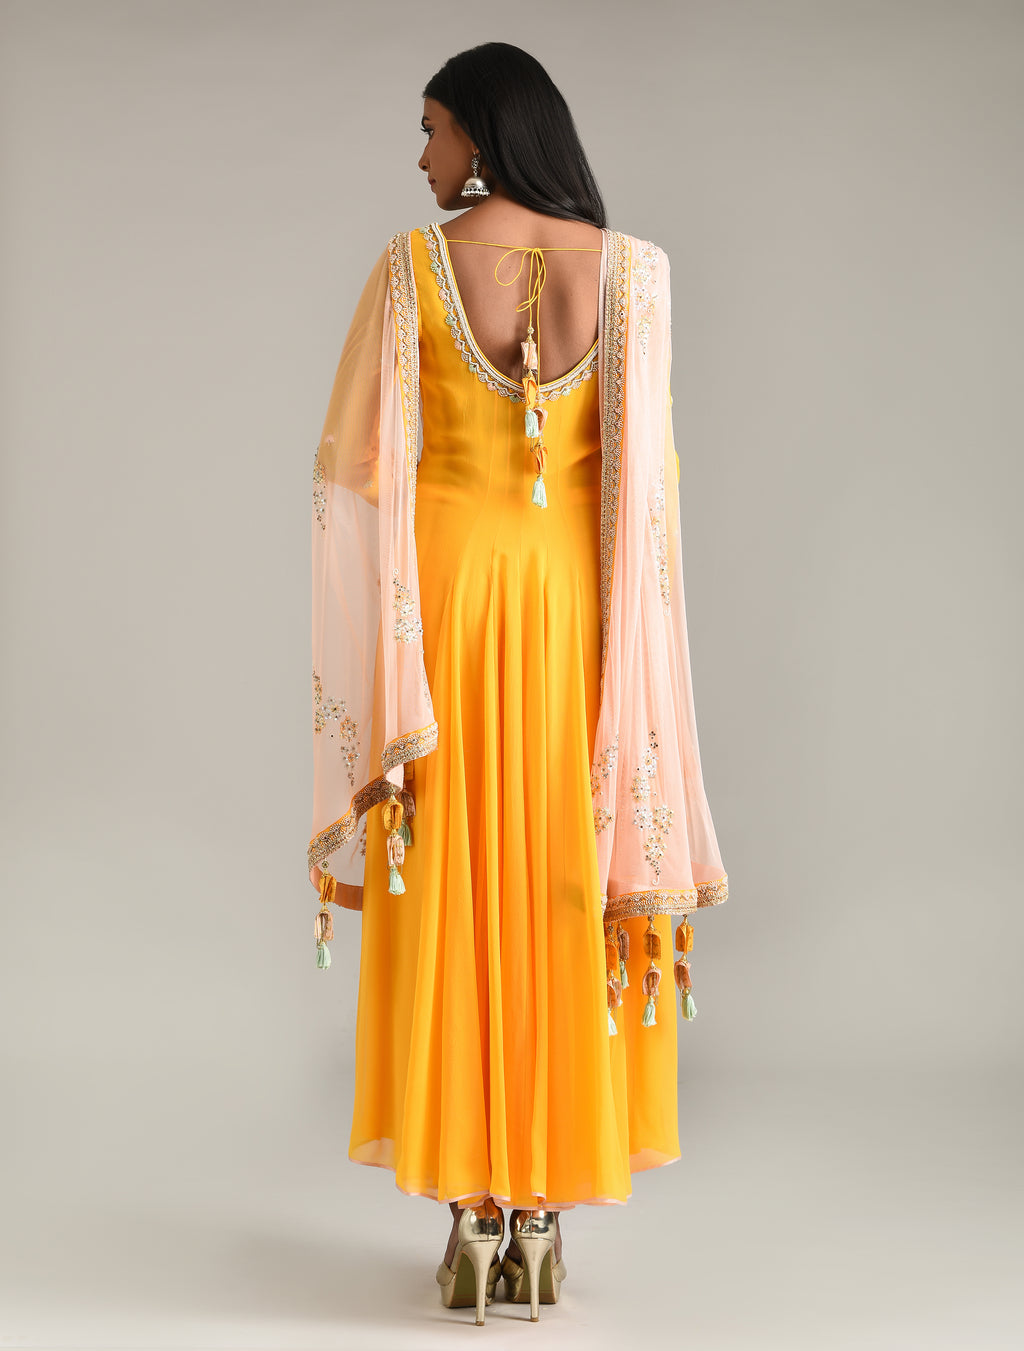 MADSAM TINZIN SUNRISE YELLOW ANARKALI SET